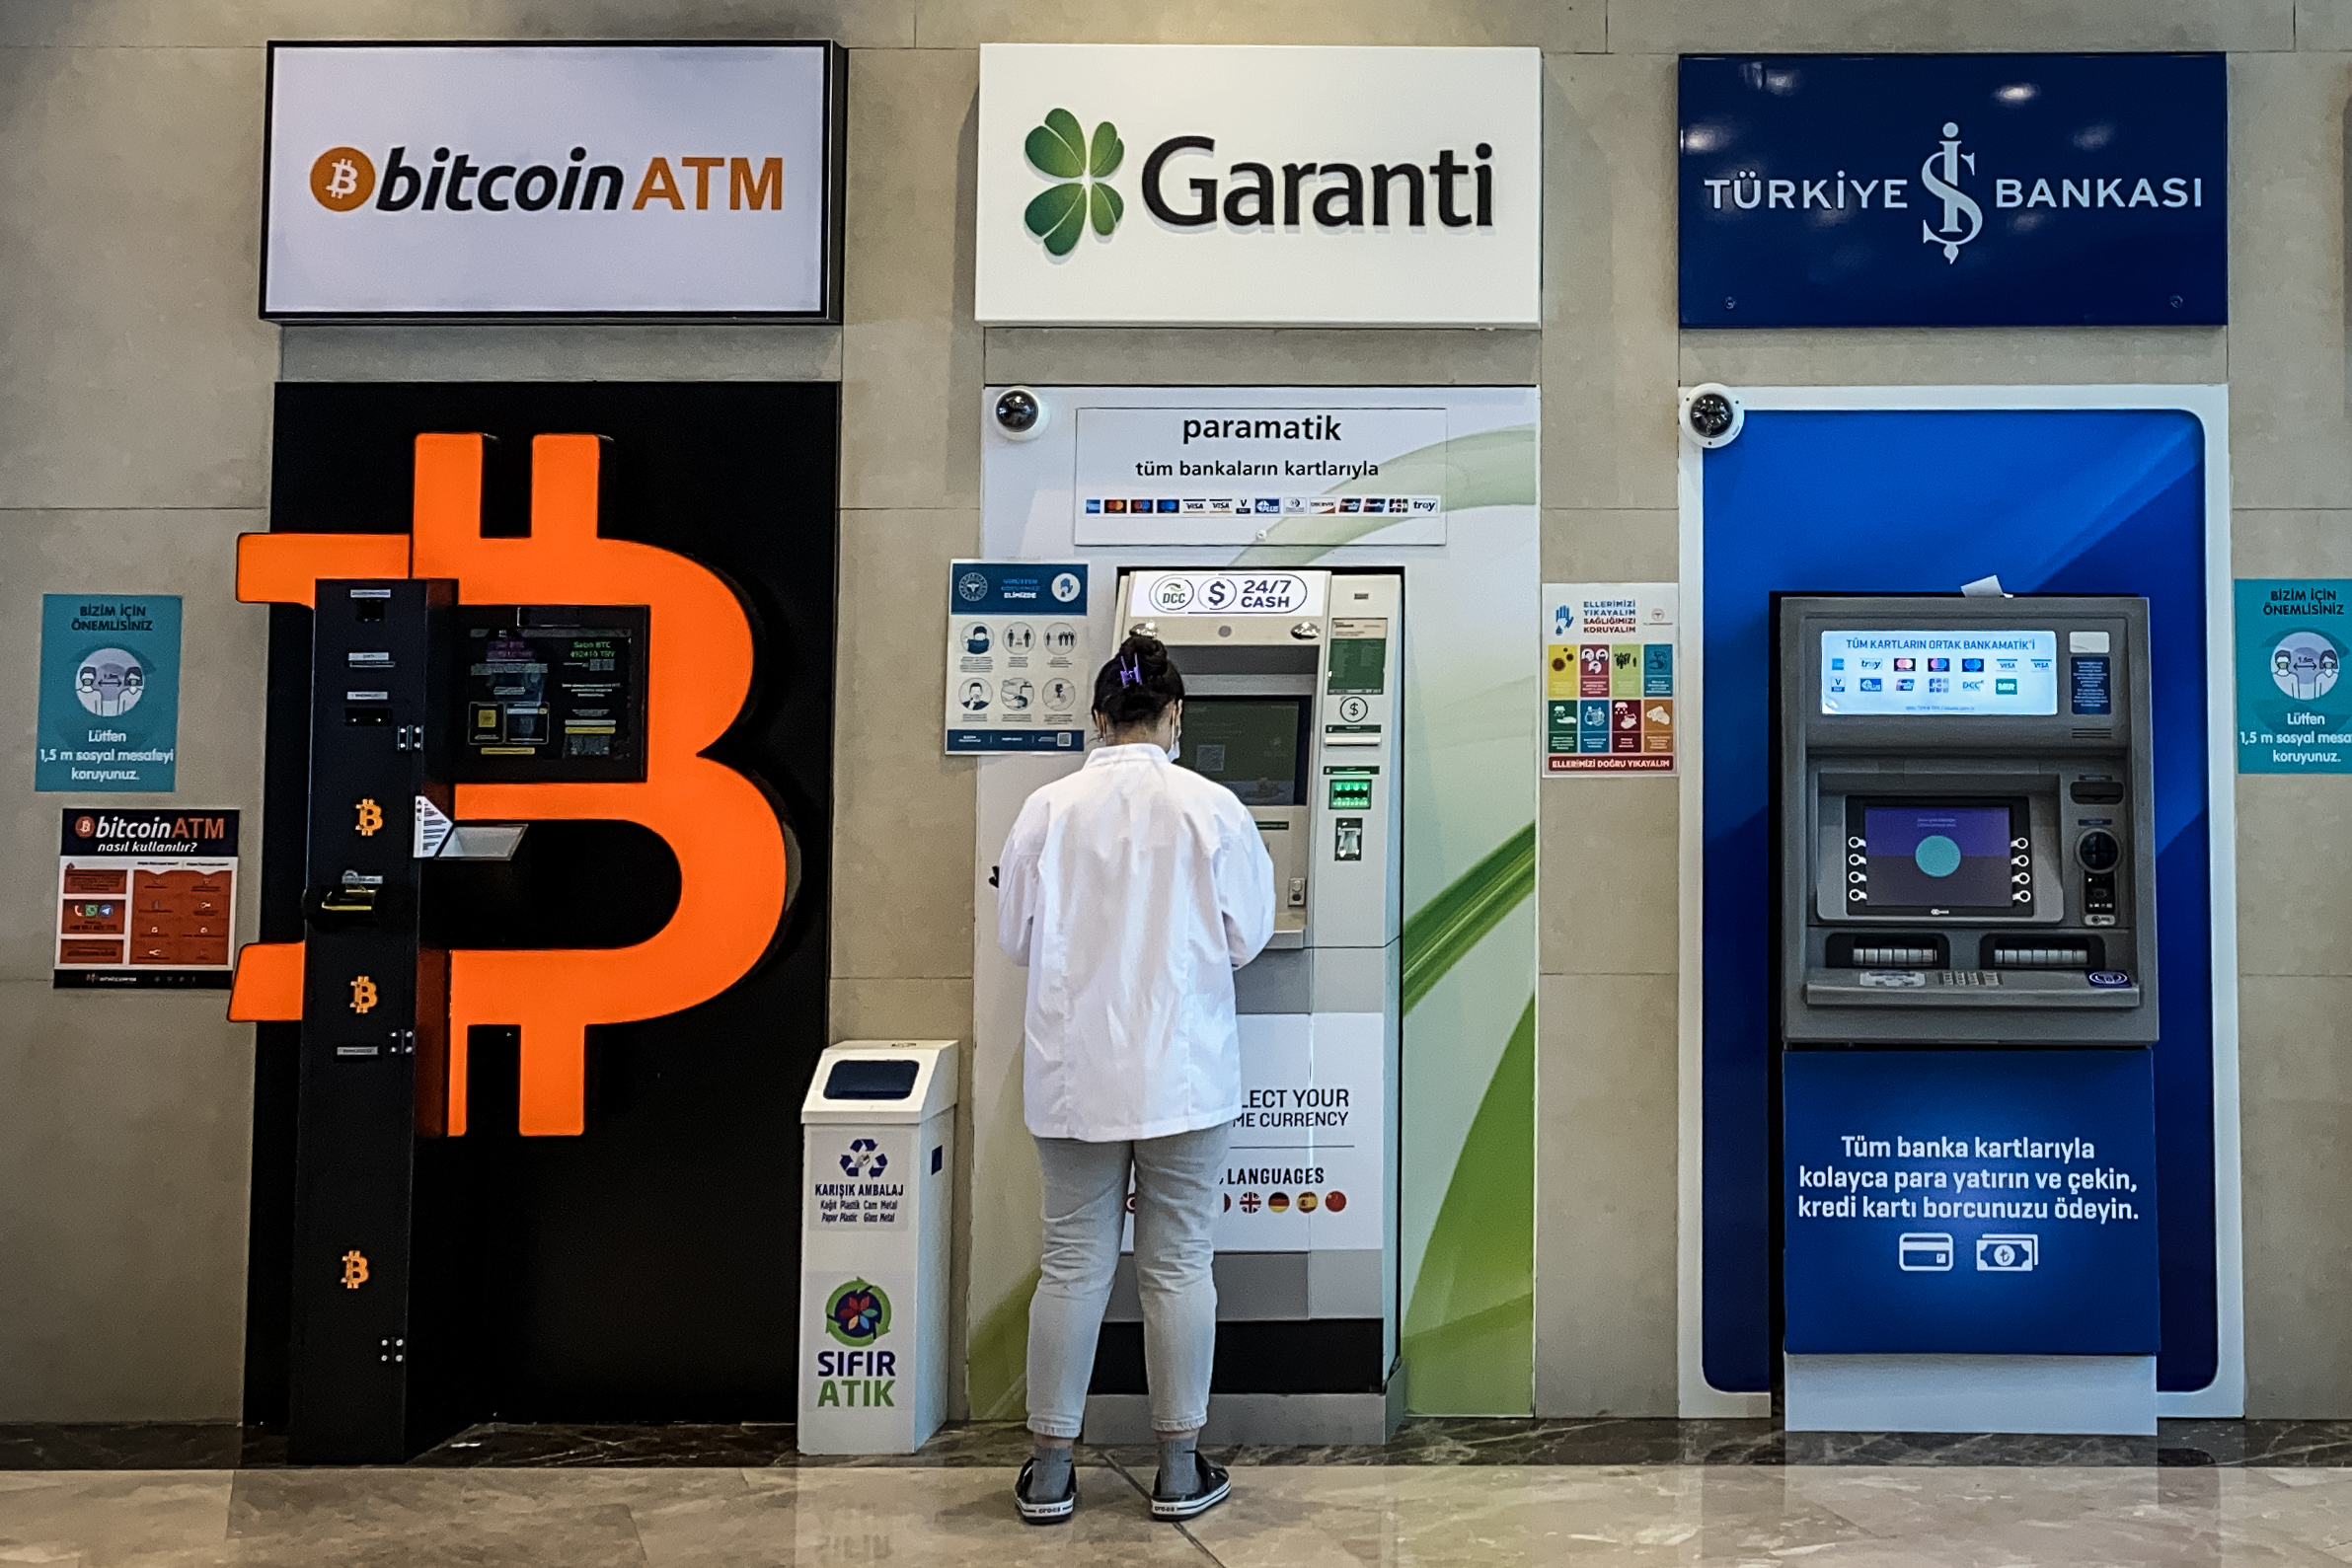 As Bitcoin Enters Market Mainstream, Regulation Appears Imminent